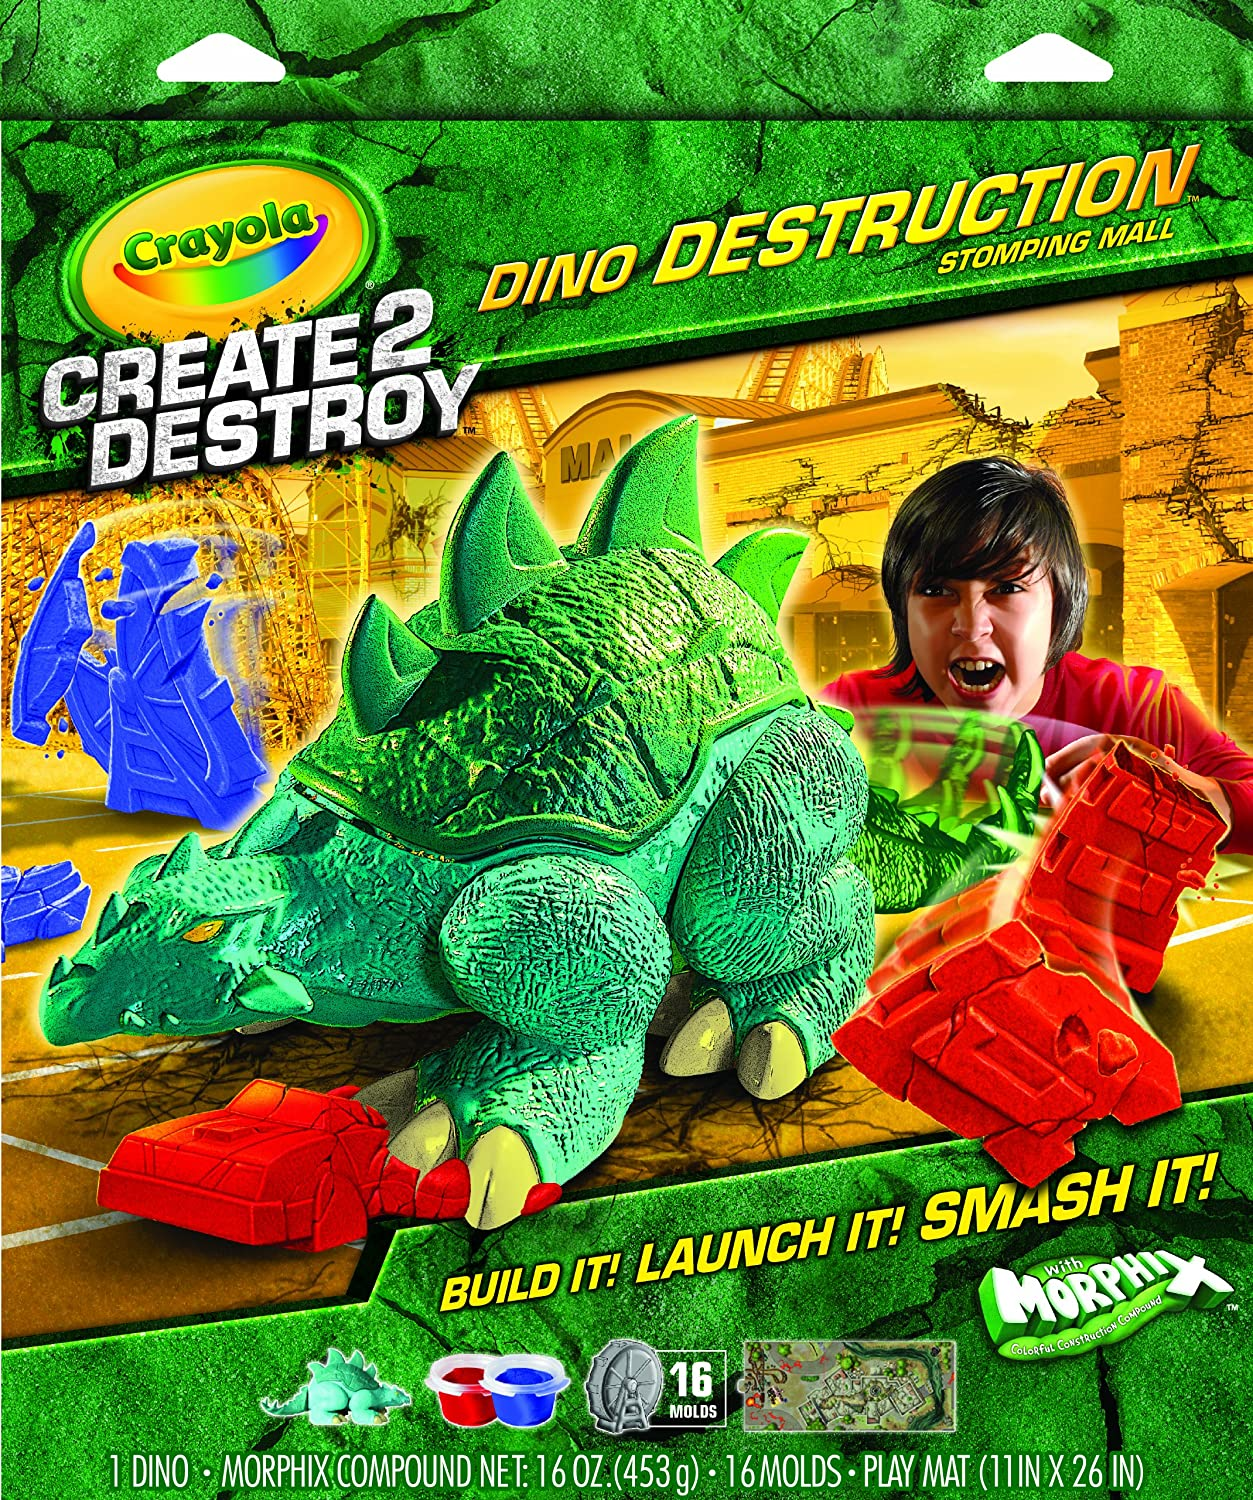 Crayola Create 2 Destroy Dino Destruction Stomping Mall Binney /& Smith 03-4107